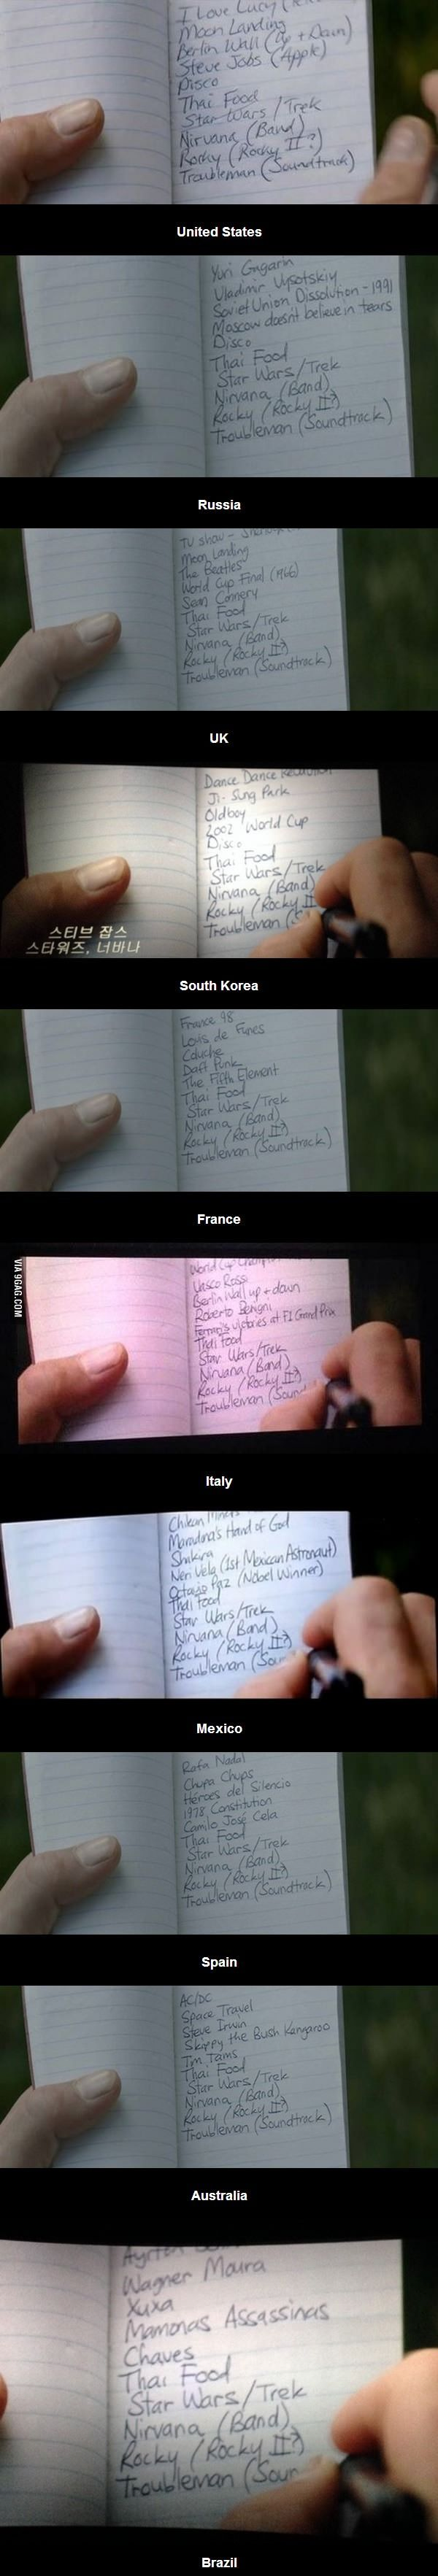 Captain America's notebook: The list of things he missed while frozen was different in different countries. Would have been epic if Buffy/Angel/Firefly had been on there